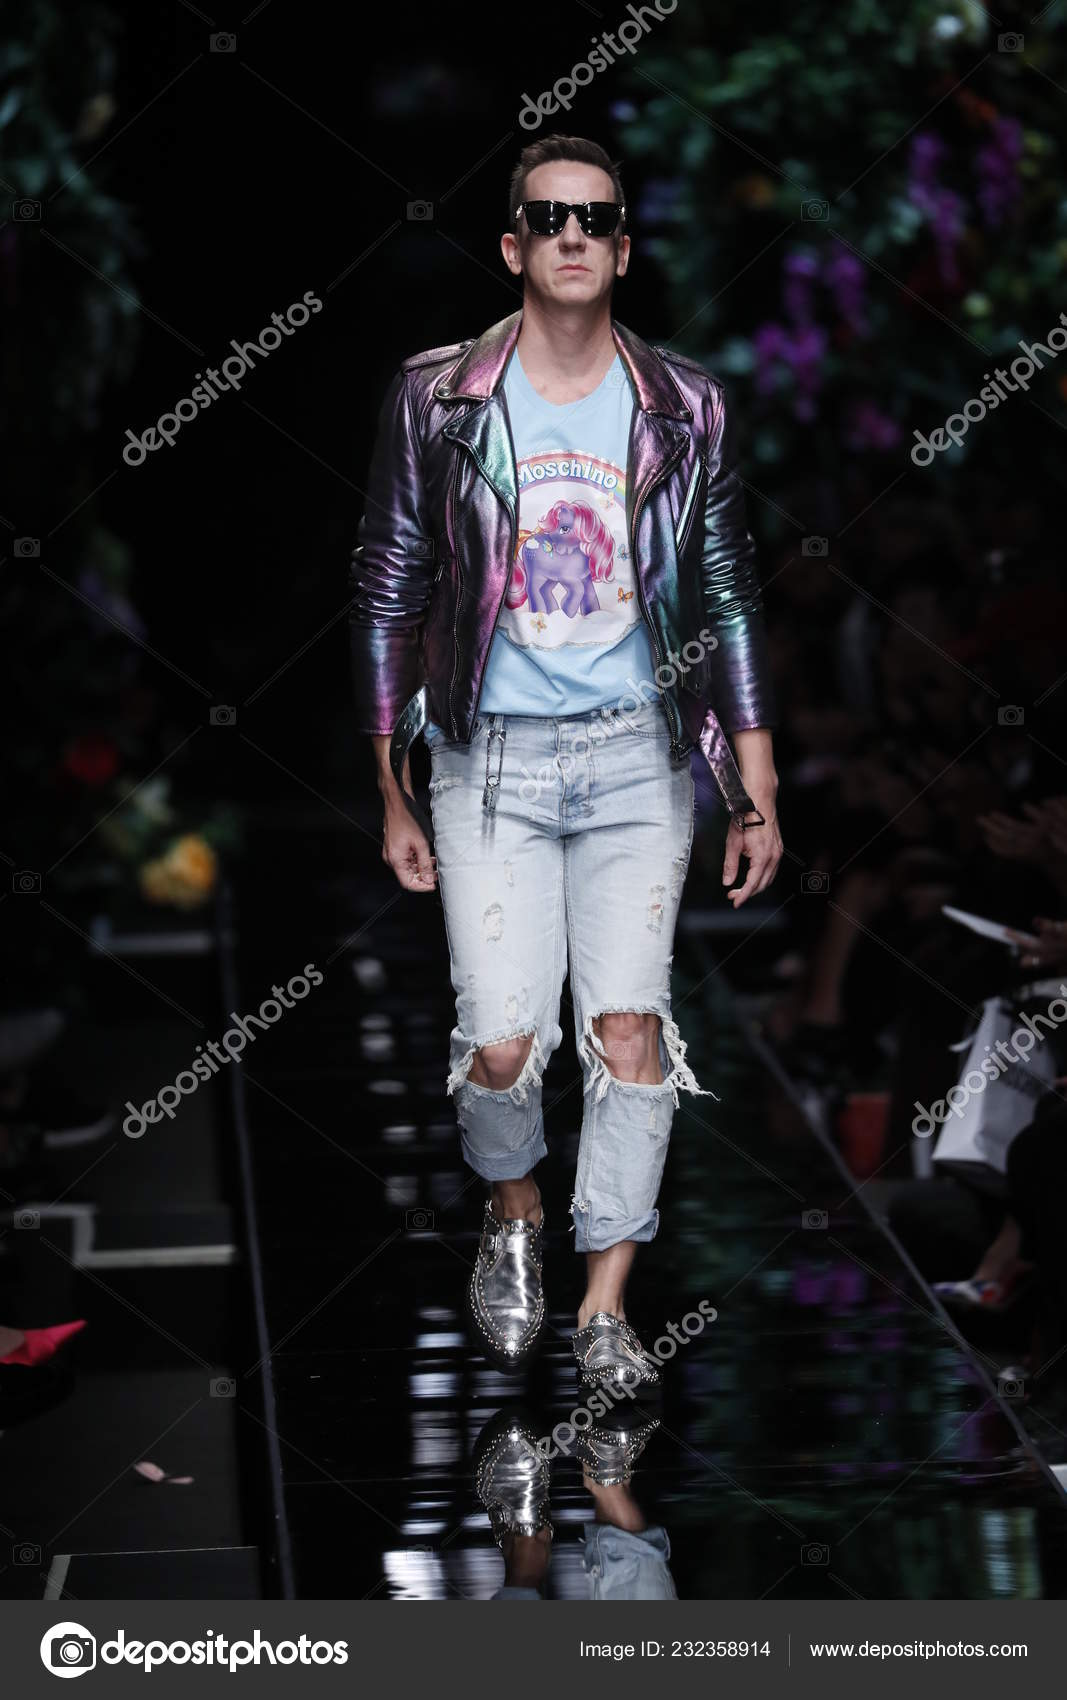 ba7d51cb80d Milan Italy September Designer Jeremy Scott Walks Runway Moschino ...